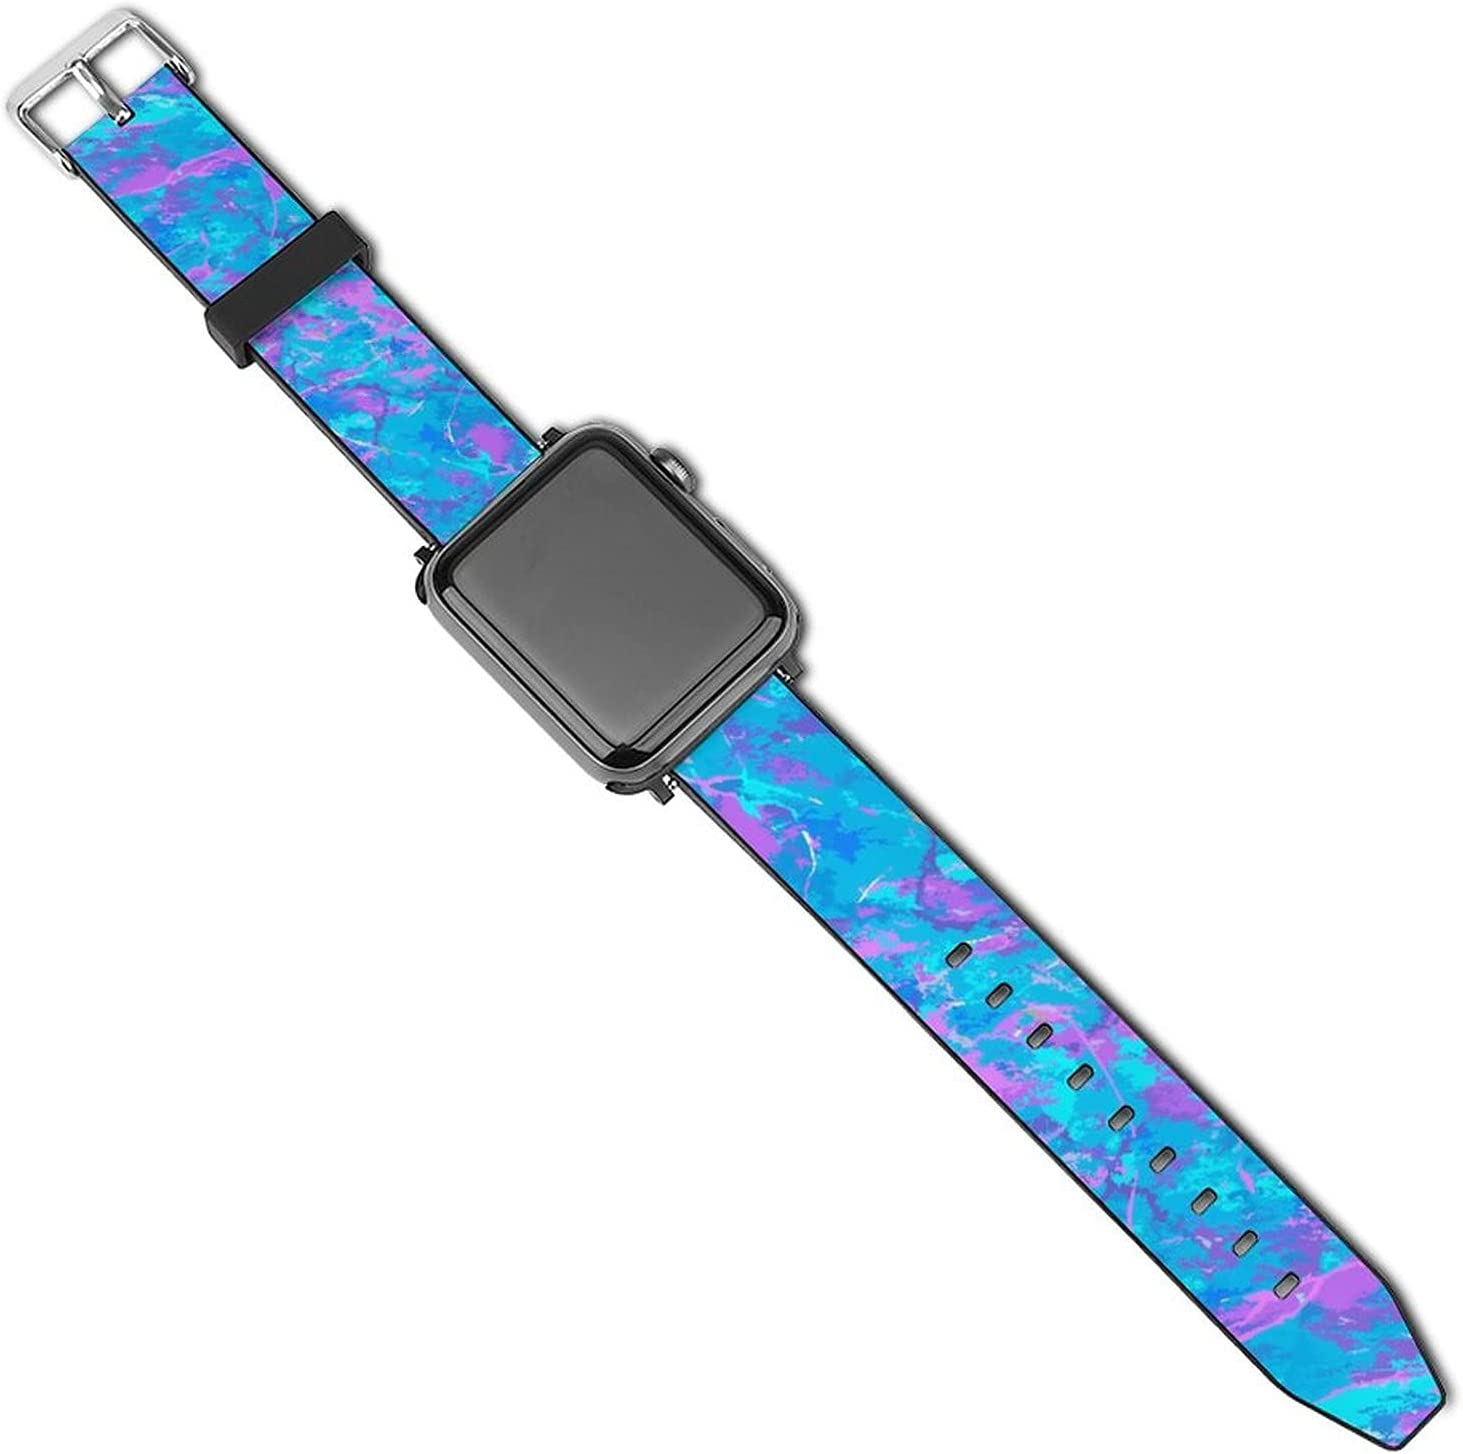 NiYoung Modern Ultraviolet Fluid Background Fantasy Watch Band Compatible with Apple Watch 38mm 40mm 42mm 44mm Leather Watch Sport Replacement Strap Compatible for iWatch Series 5 4 3 2 1